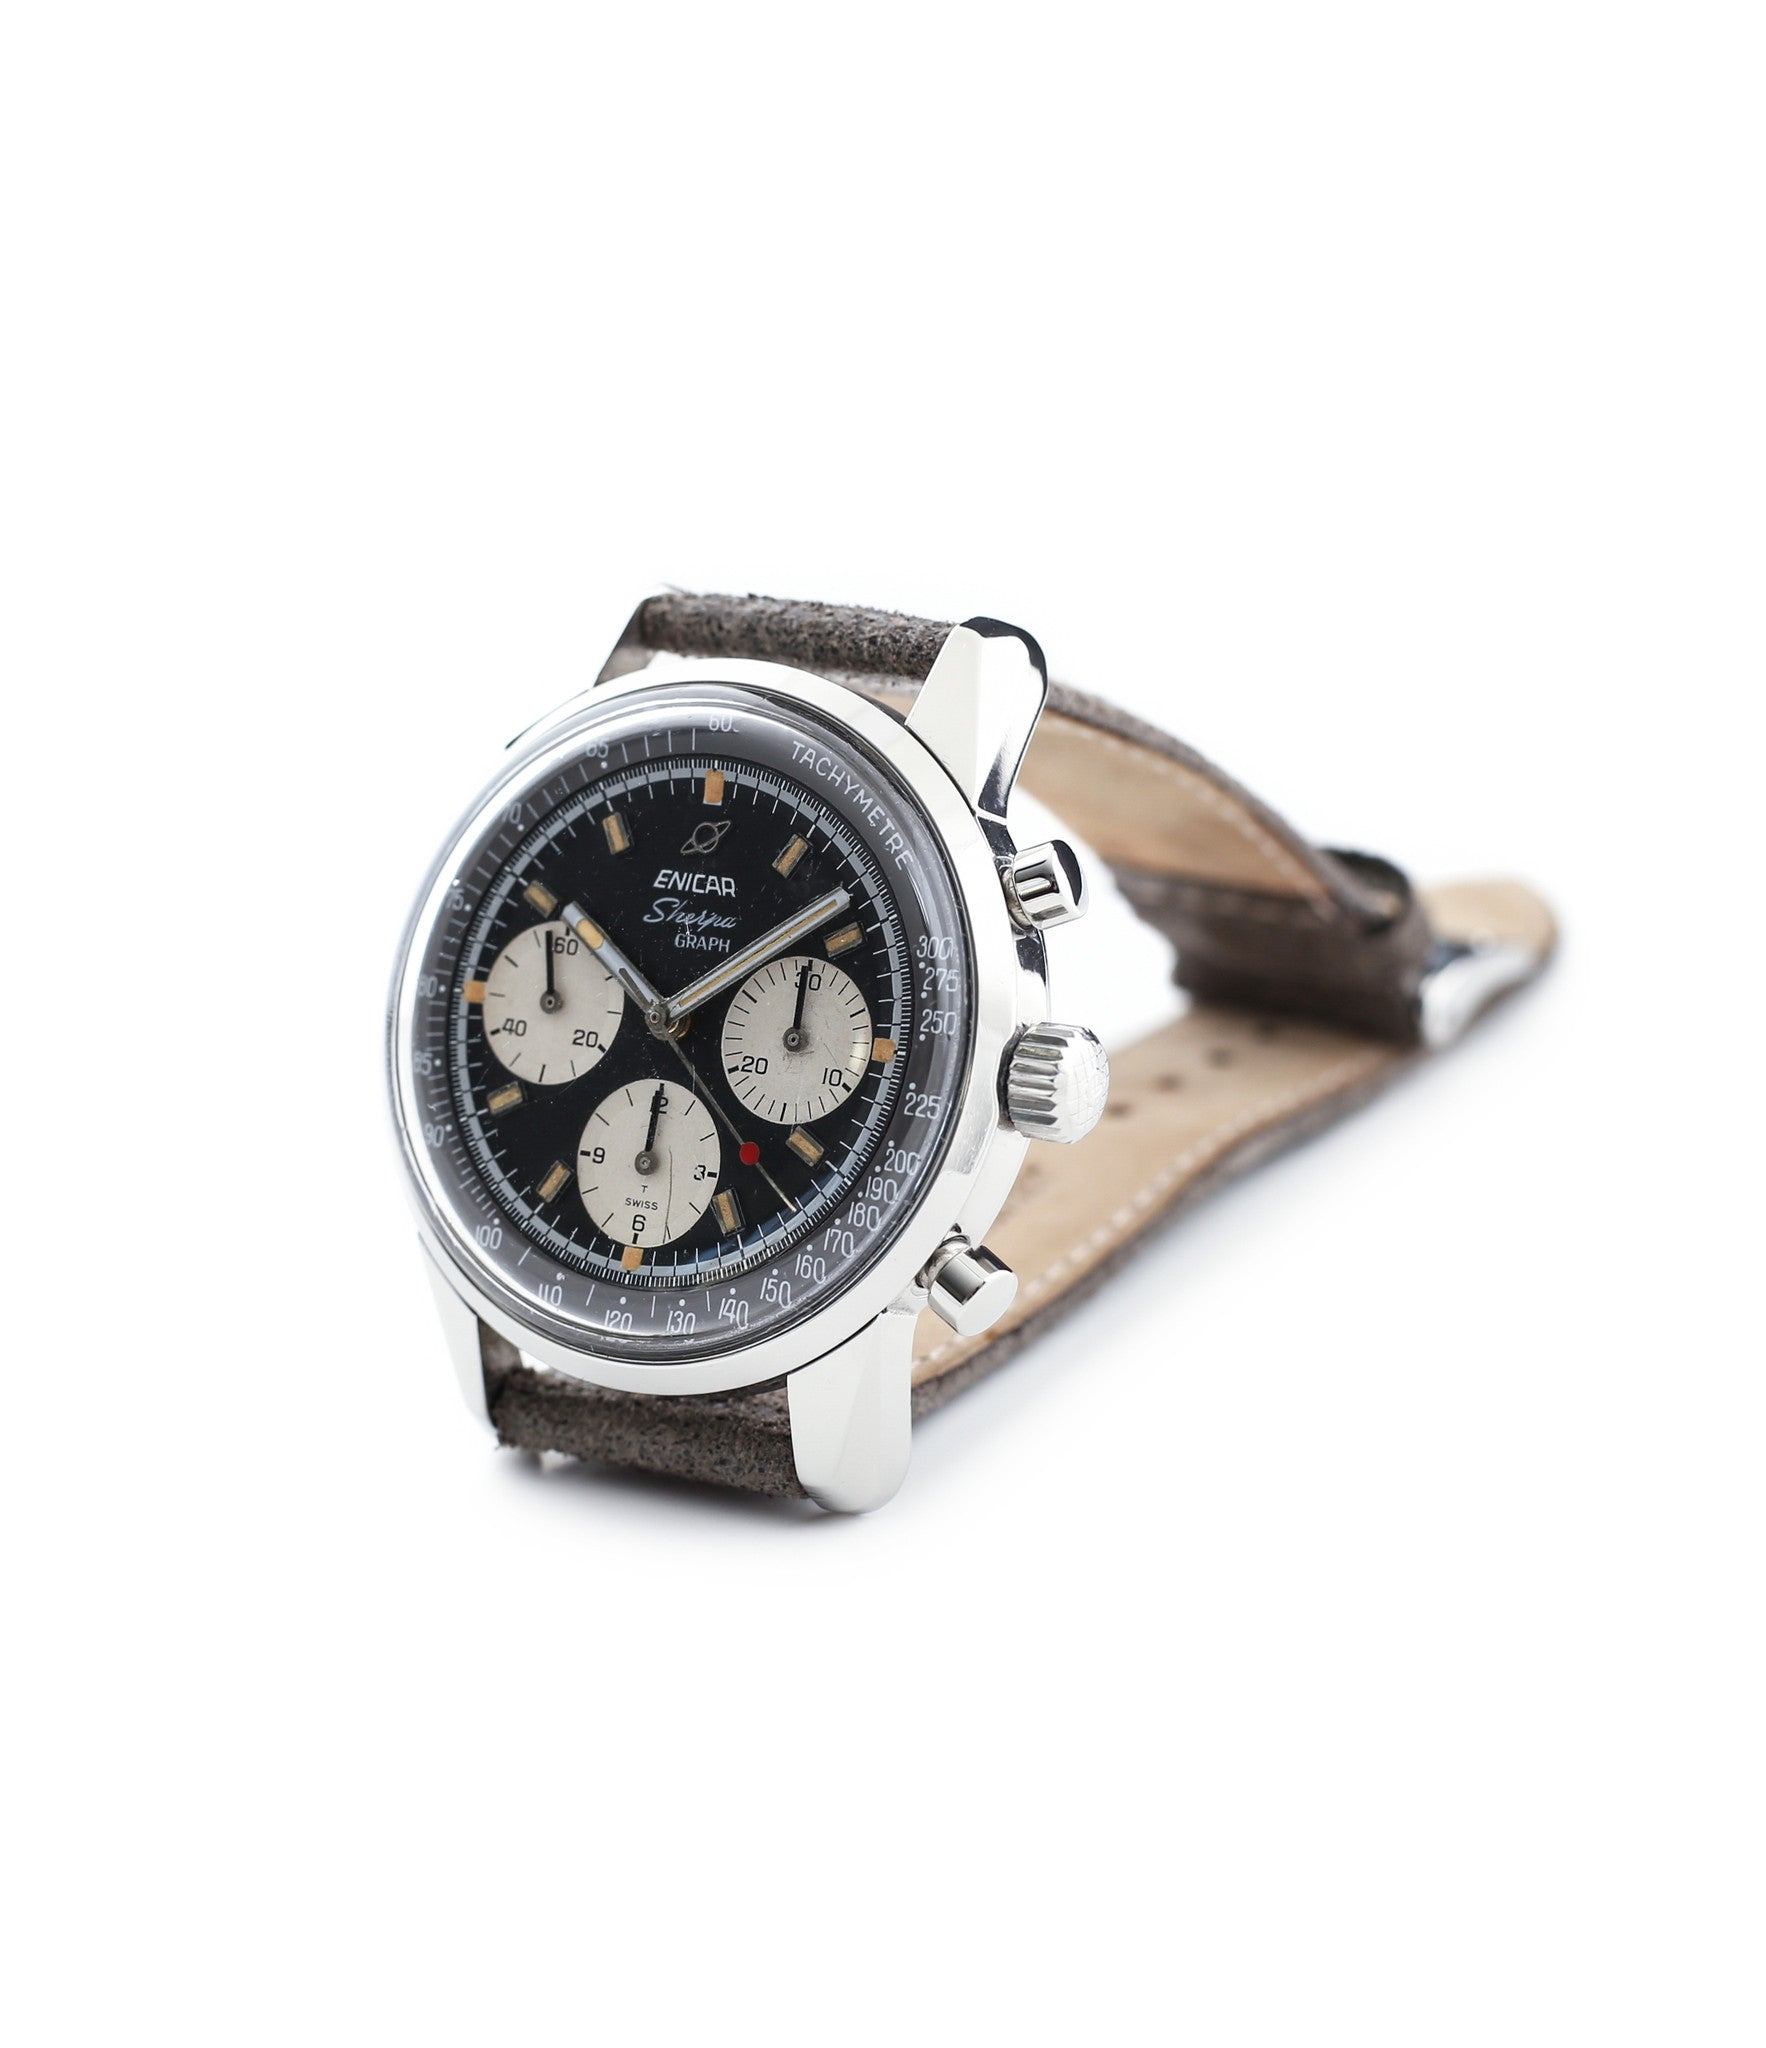 buy vintage Enicar Sherpha Chronograph 300 Ref. 1962 steel Valjoux 72 manual-winding rare racing watch at WATCH XCHNAGE London with tacyhmeter scale